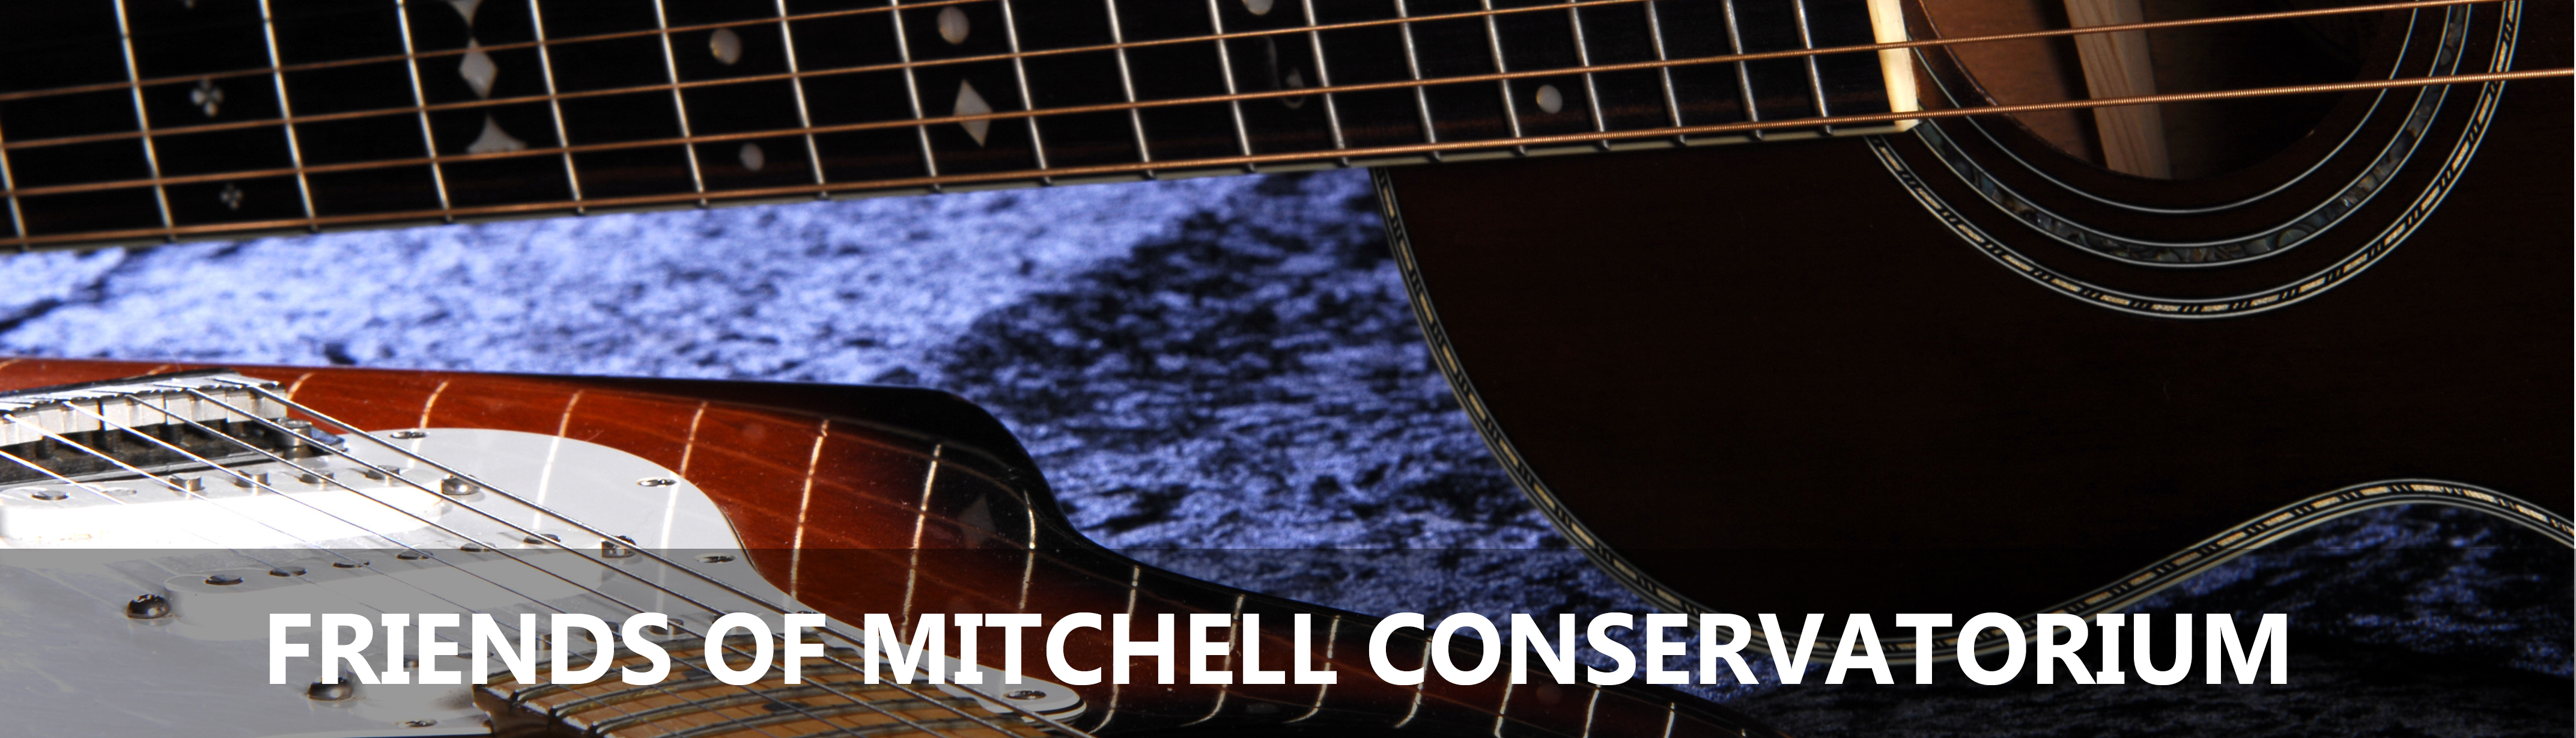 Friends of Mitchell Conservatorium